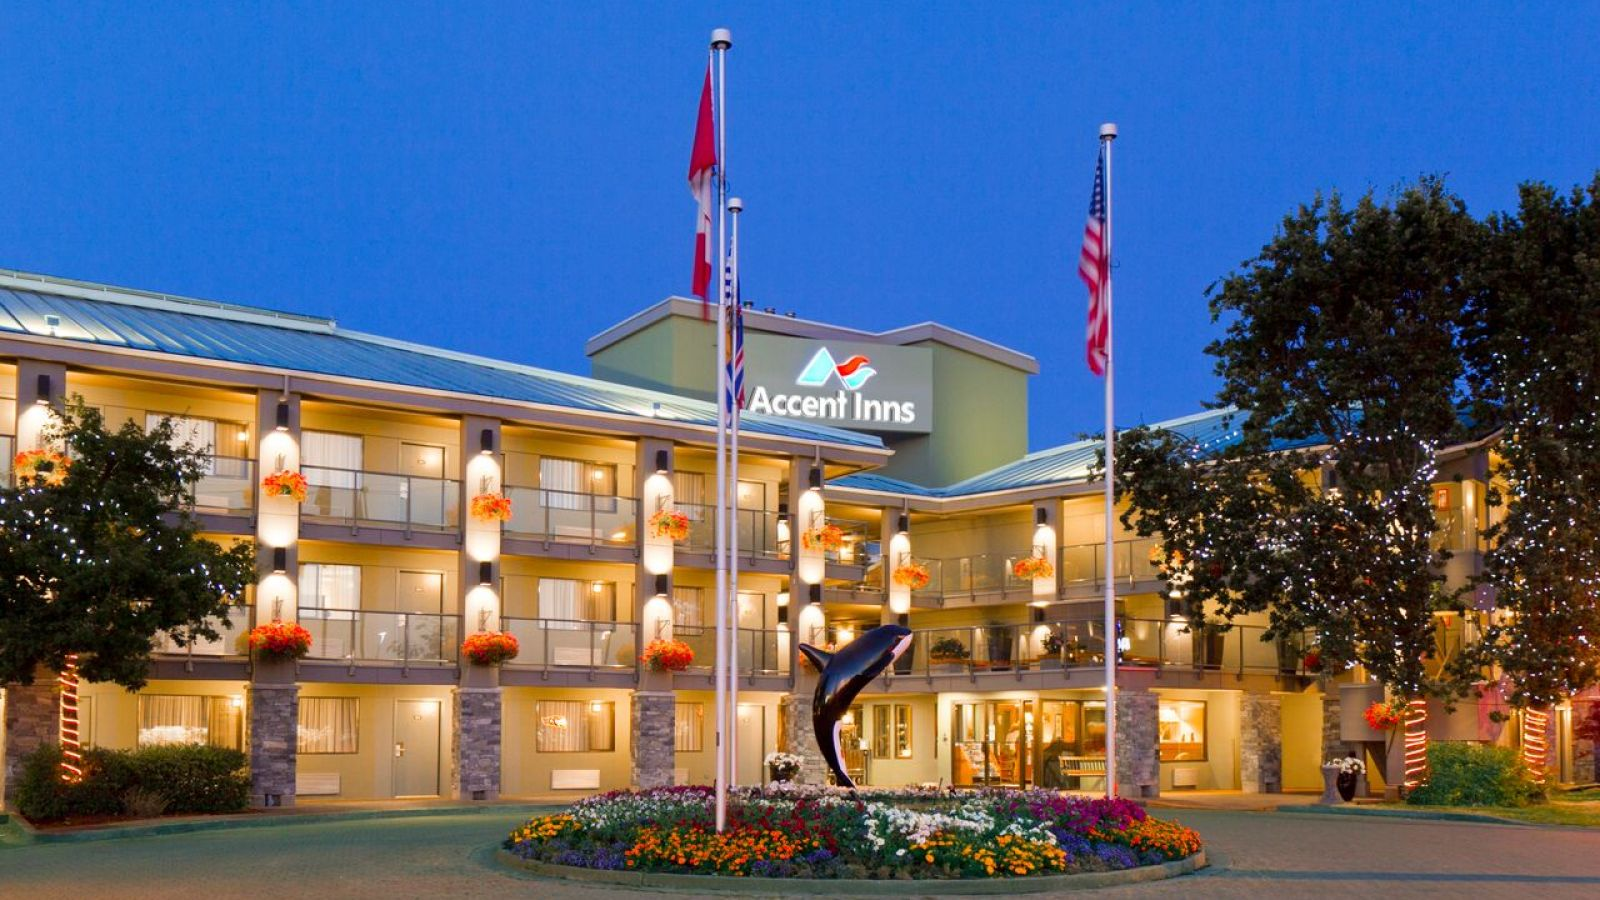 Accent Inn Victoria - Vancouver Island golf packages